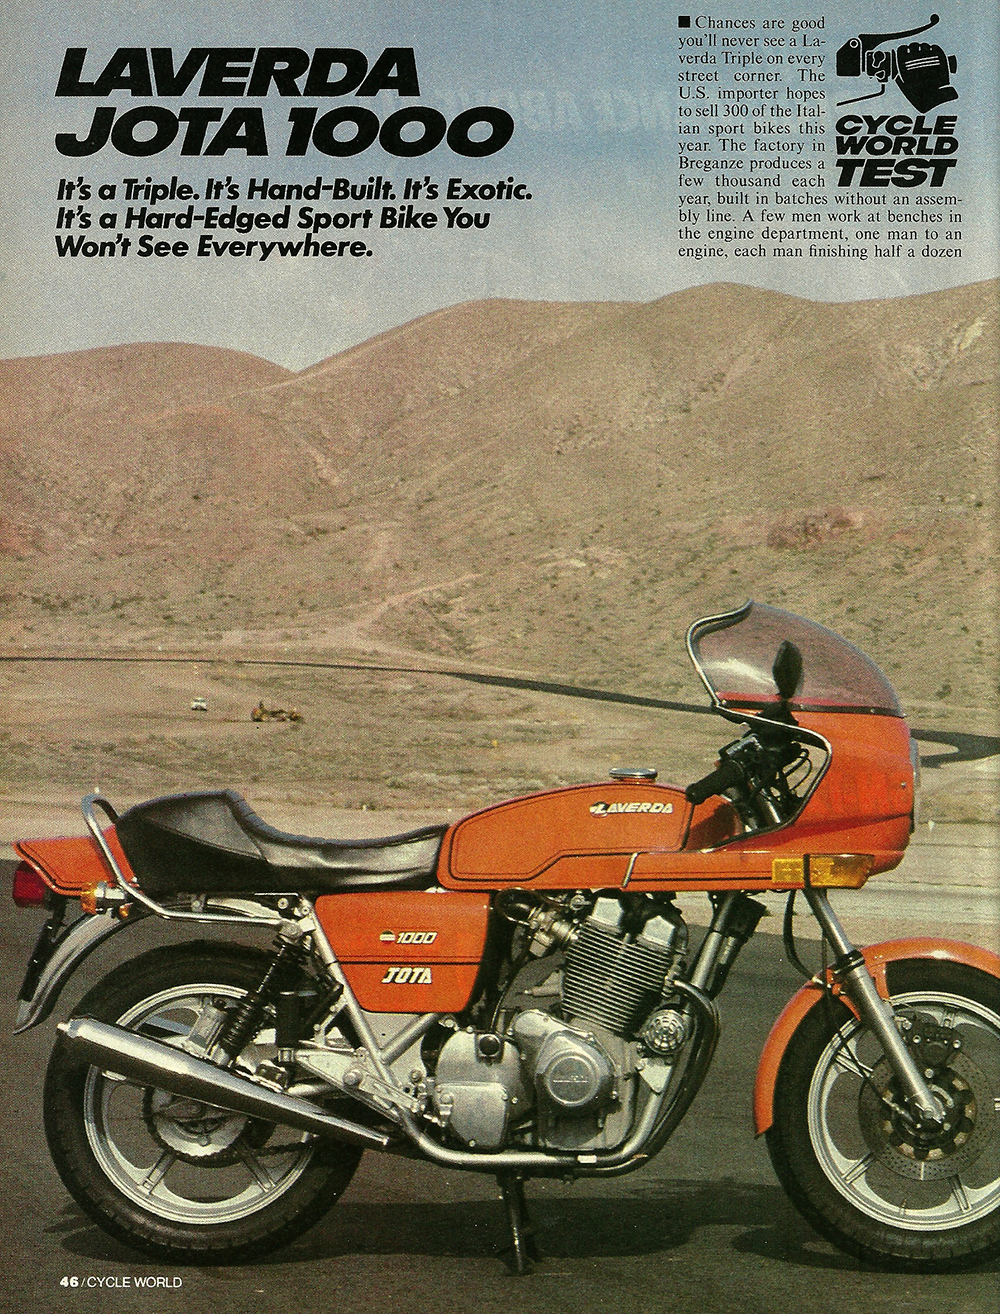 1982 Laverda Jota 1000 road test 1.jpg